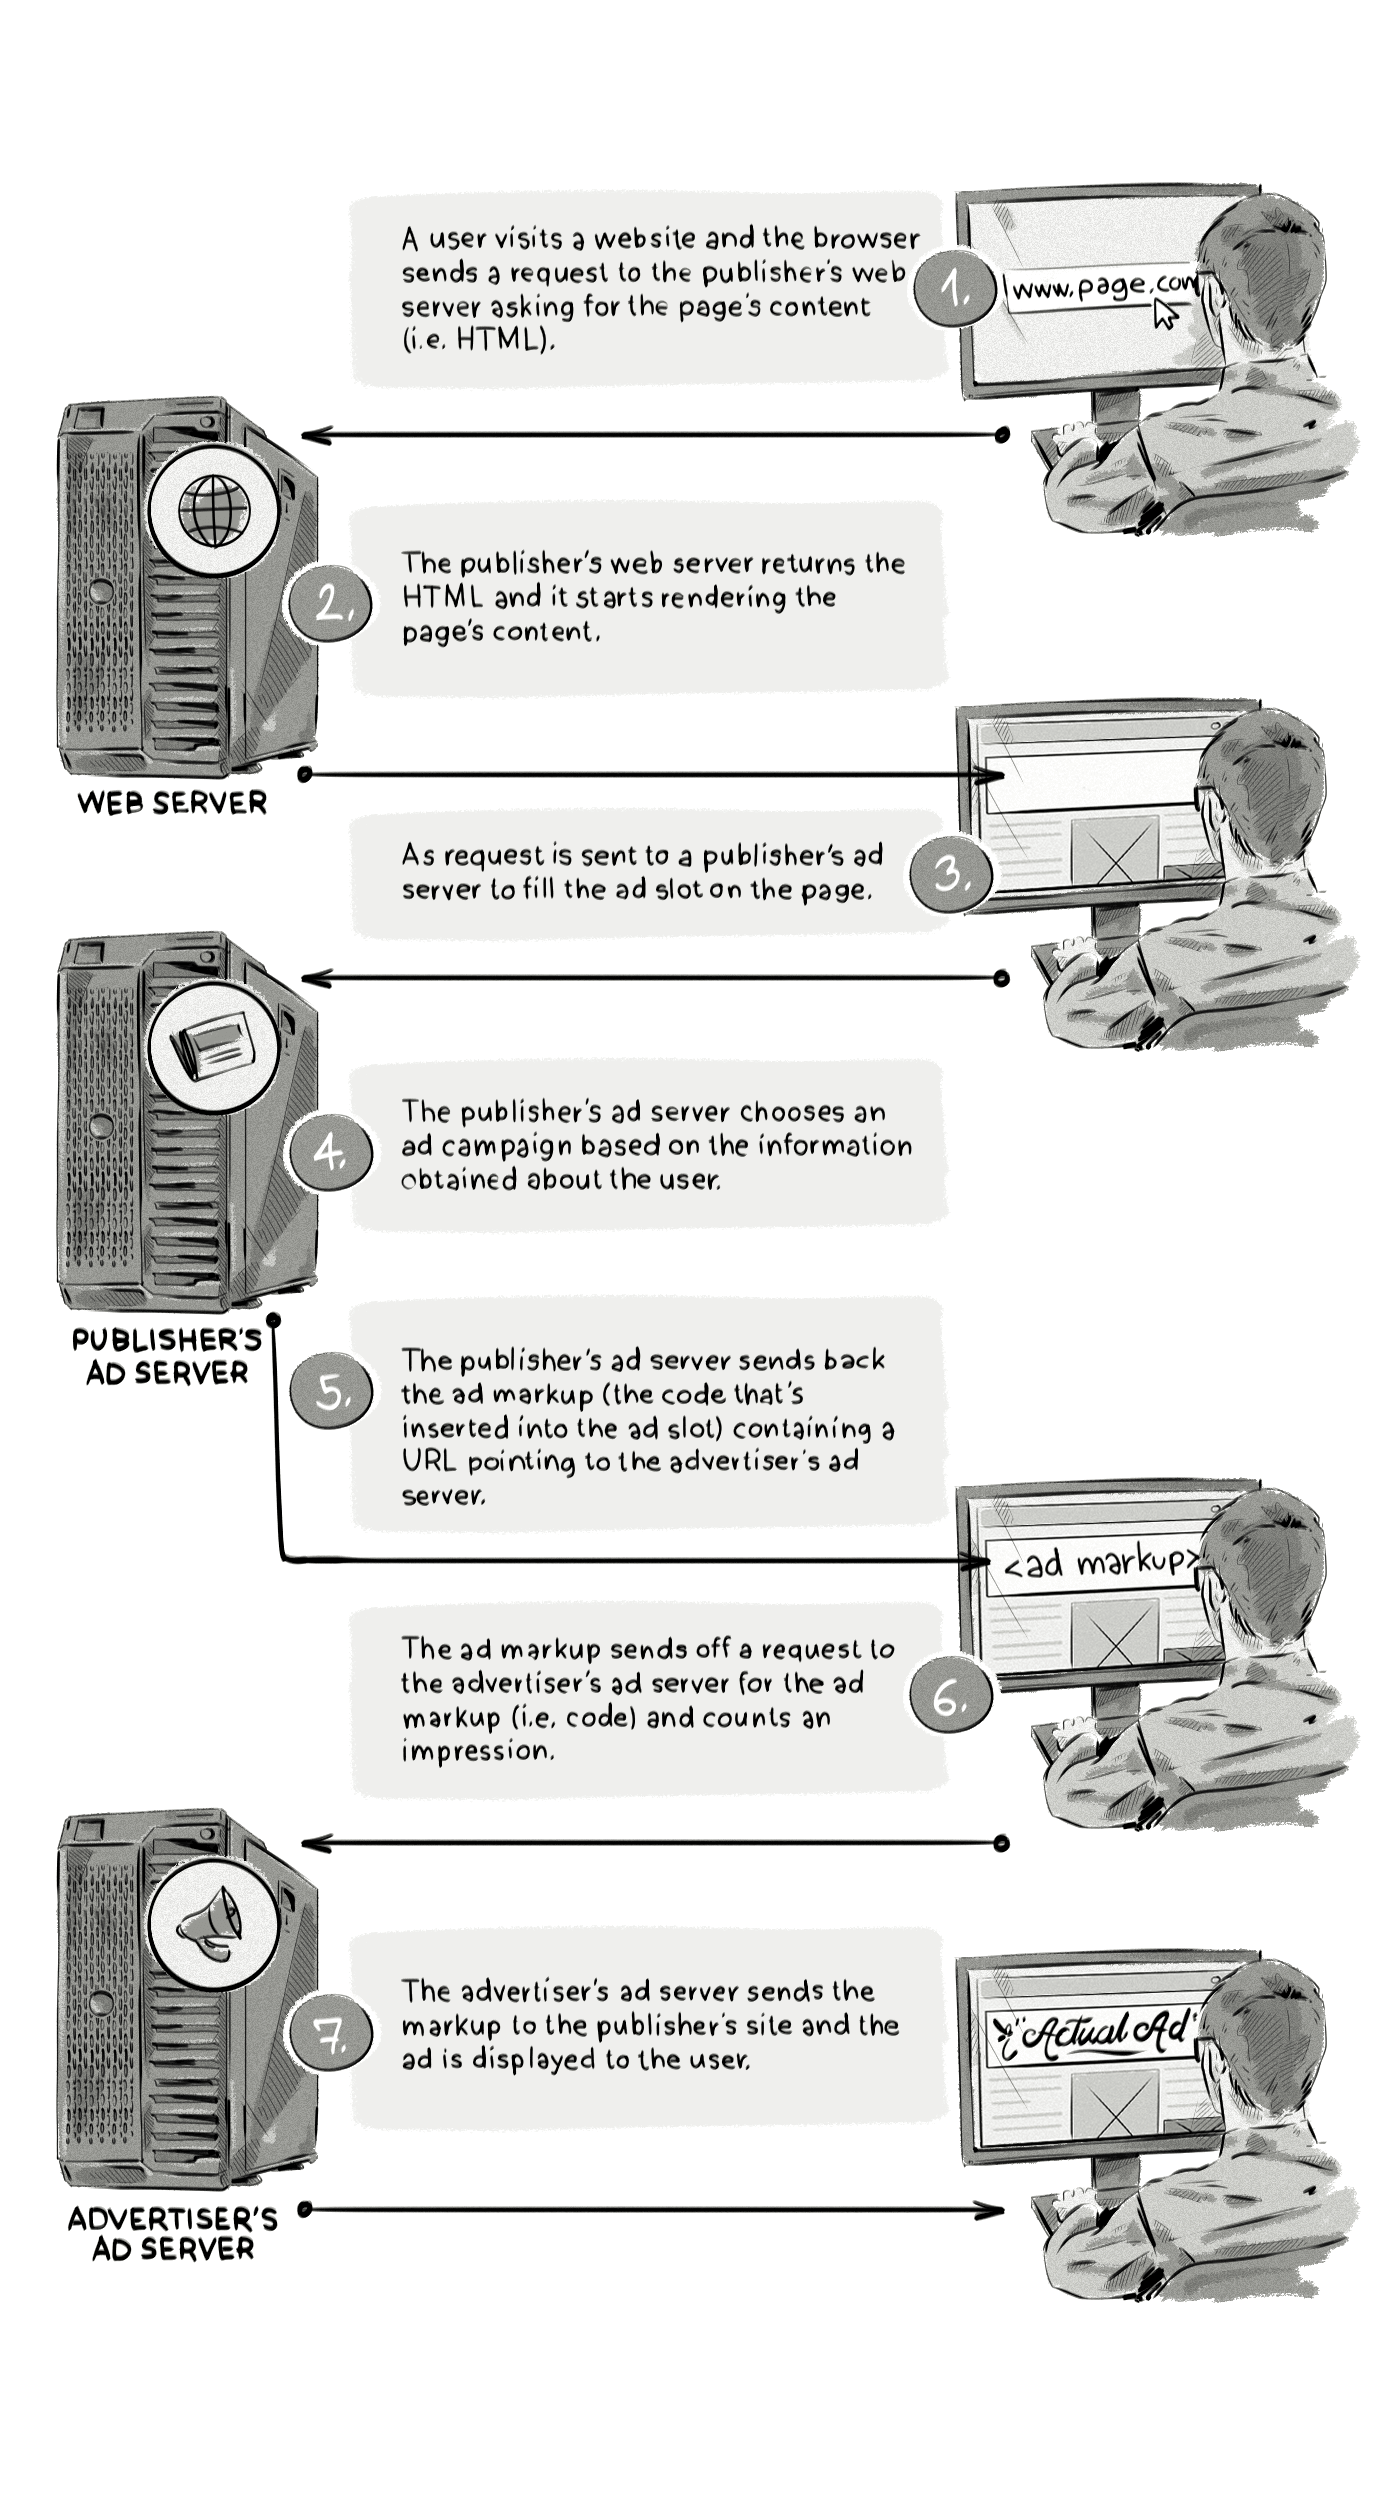 How third-party ad servers work